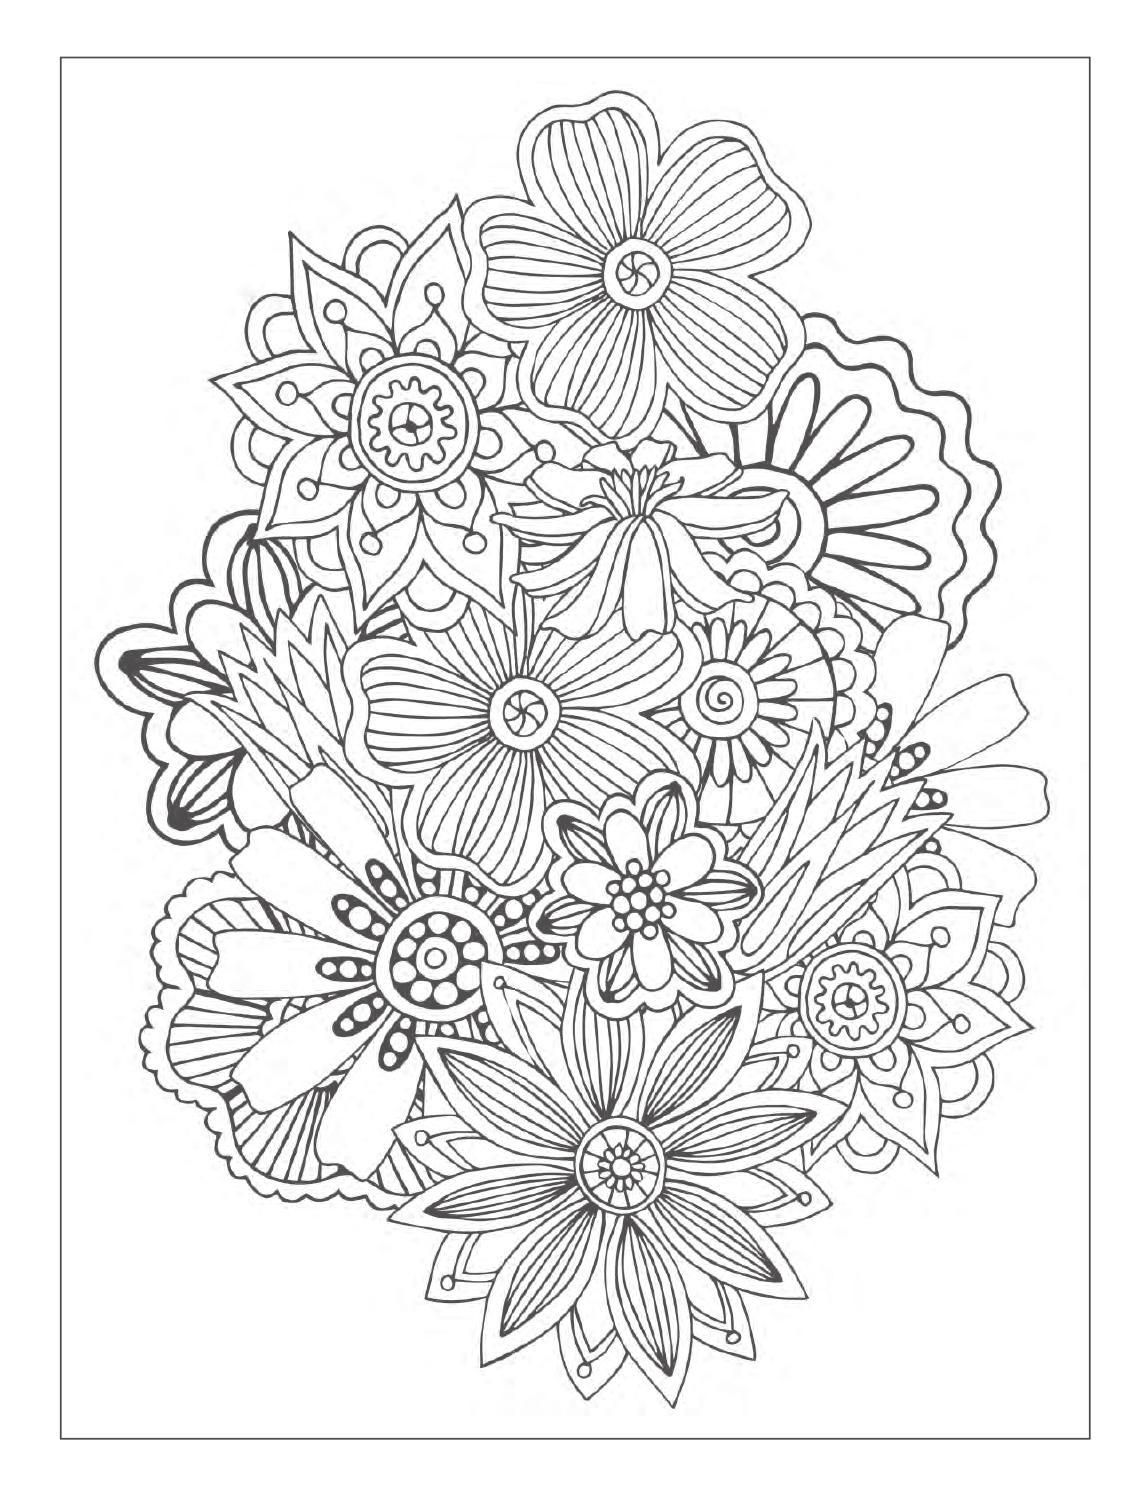 Beautiful Flowers Detailed Floral Designs Coloring Book Preview Abstract Coloring Pages Designs Coloring Books Antistress Coloring